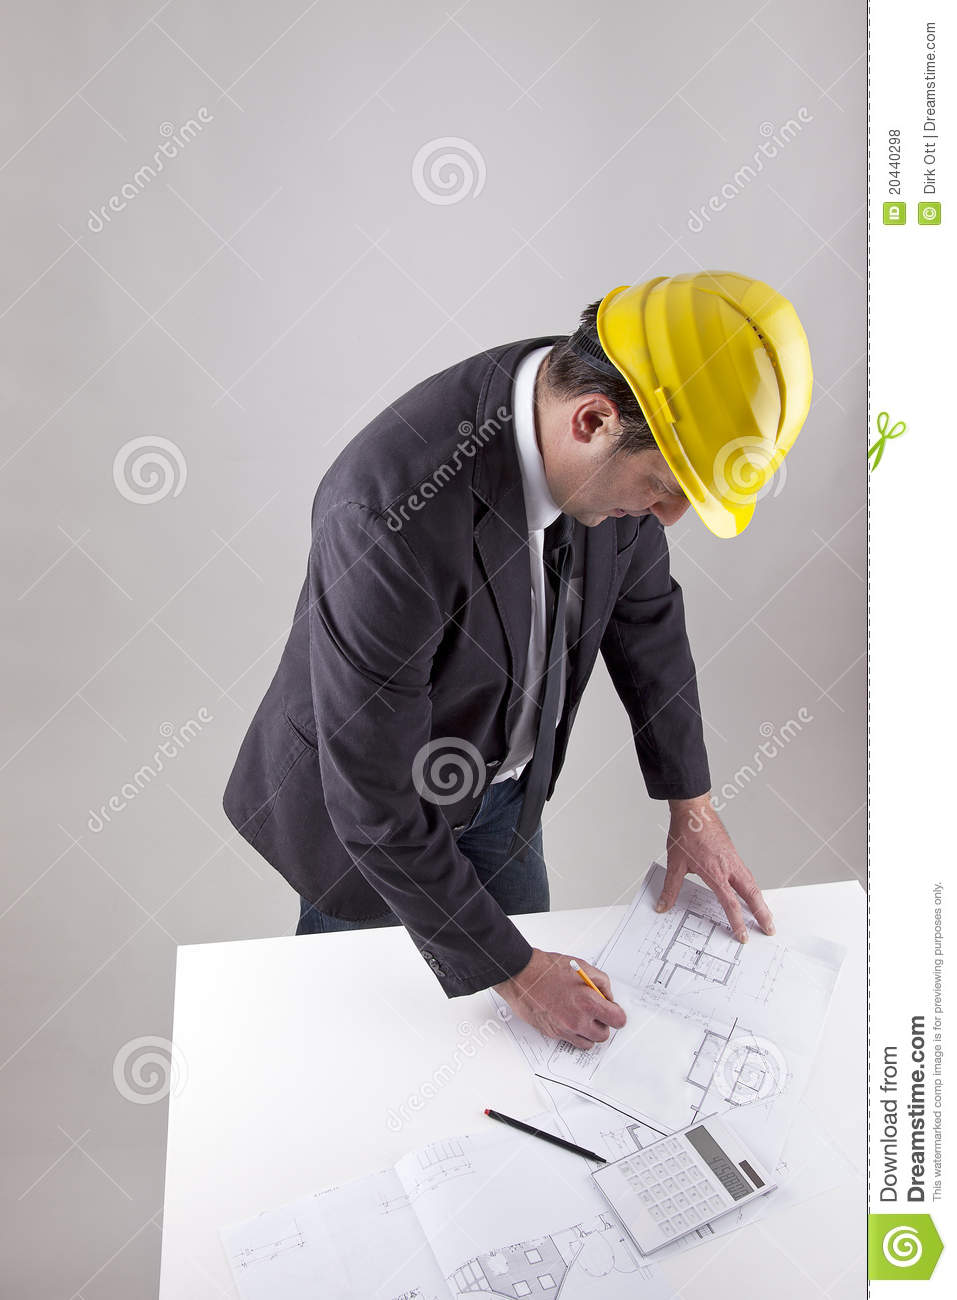 Architect at work royalty free stock photos image 20440298 for Architect at work